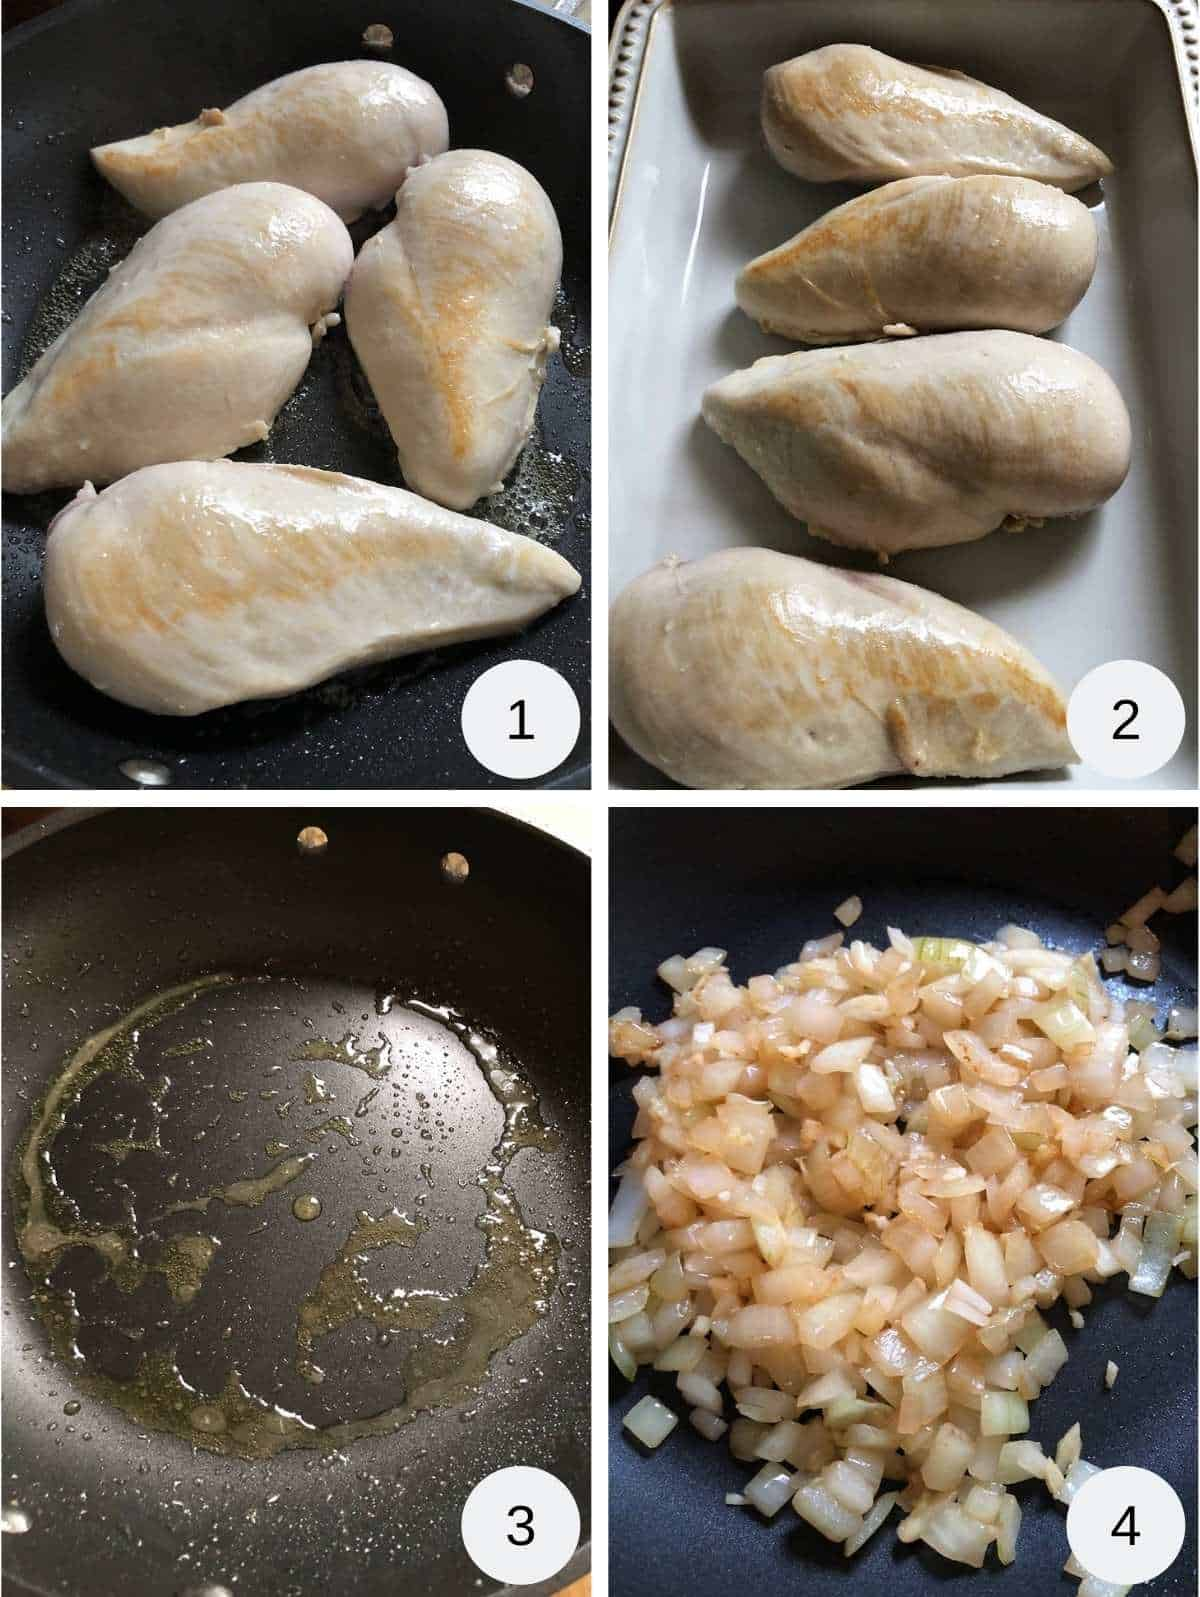 Photo collage. Image one chicken breasts frying, image two browned chicken breasts, image three oil in a pan and image 4 onions browning in a skillet.